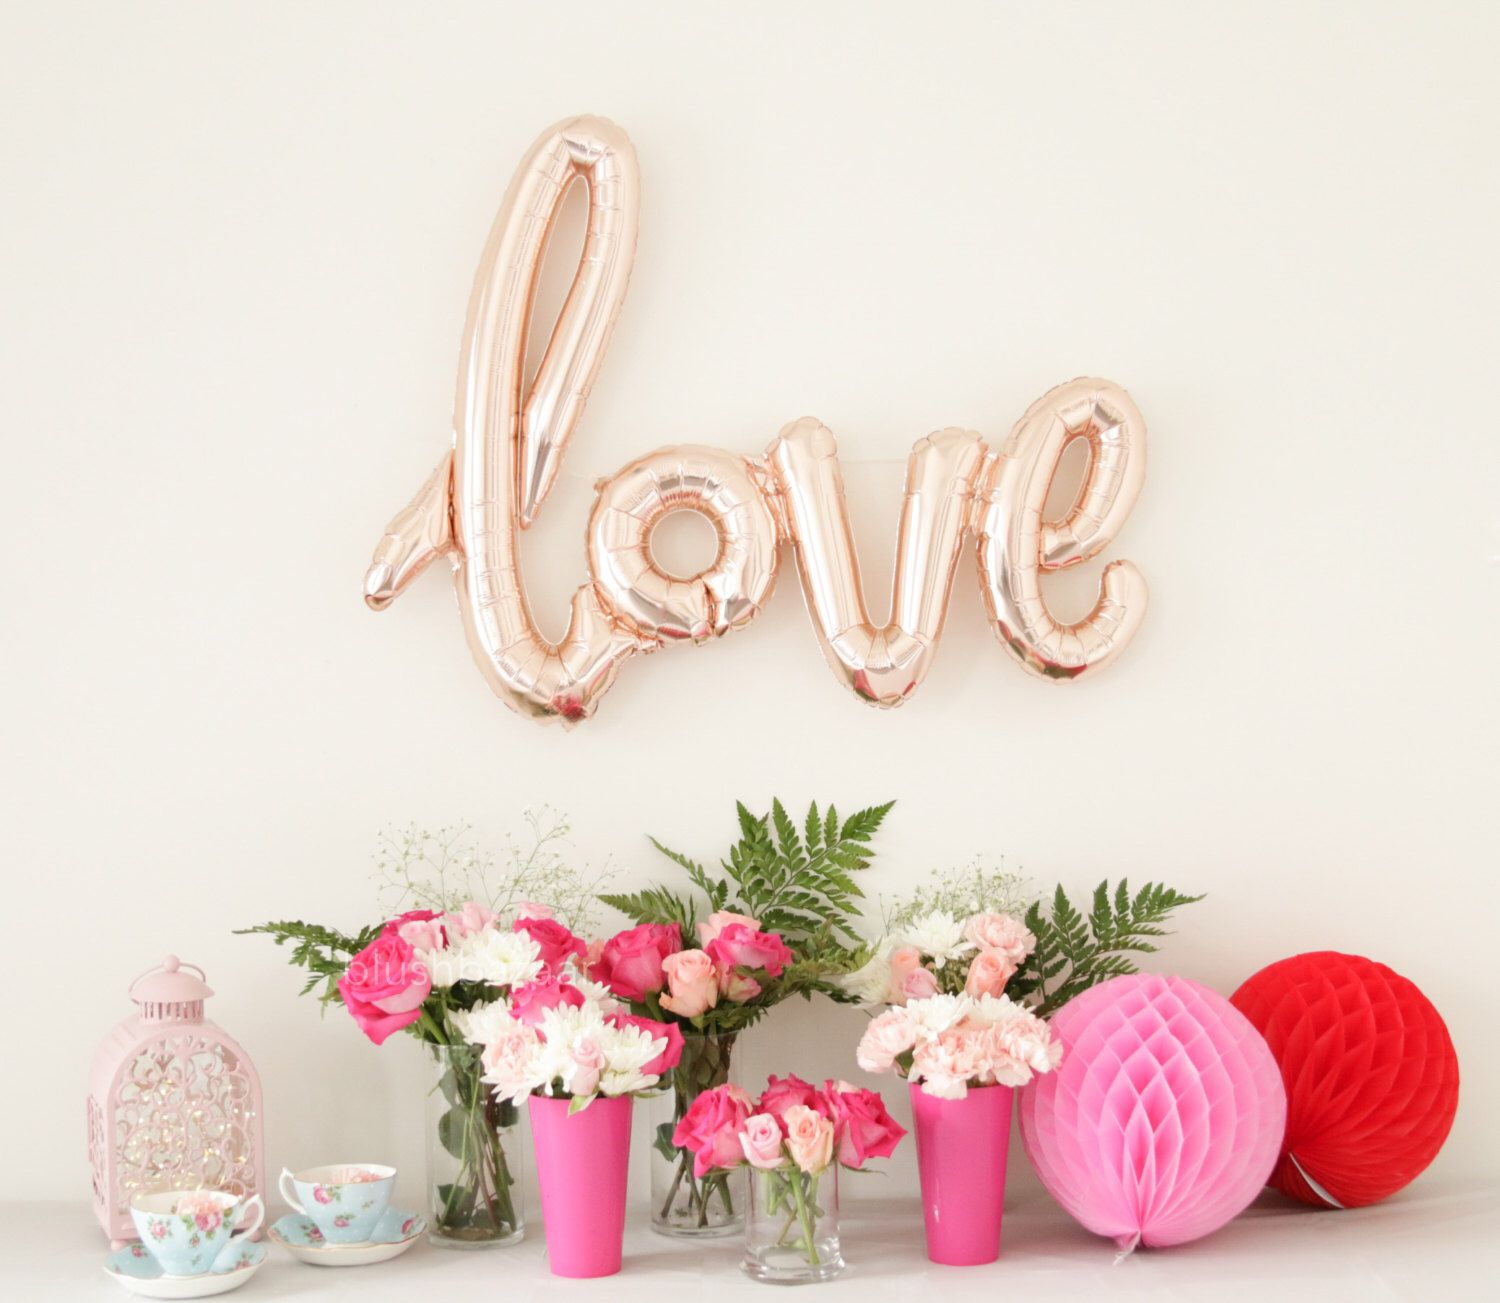 cf526dfd1b20 40 Inch Rose Gold LOVE Letter Balloons - Gold Mylar Balloon Letters